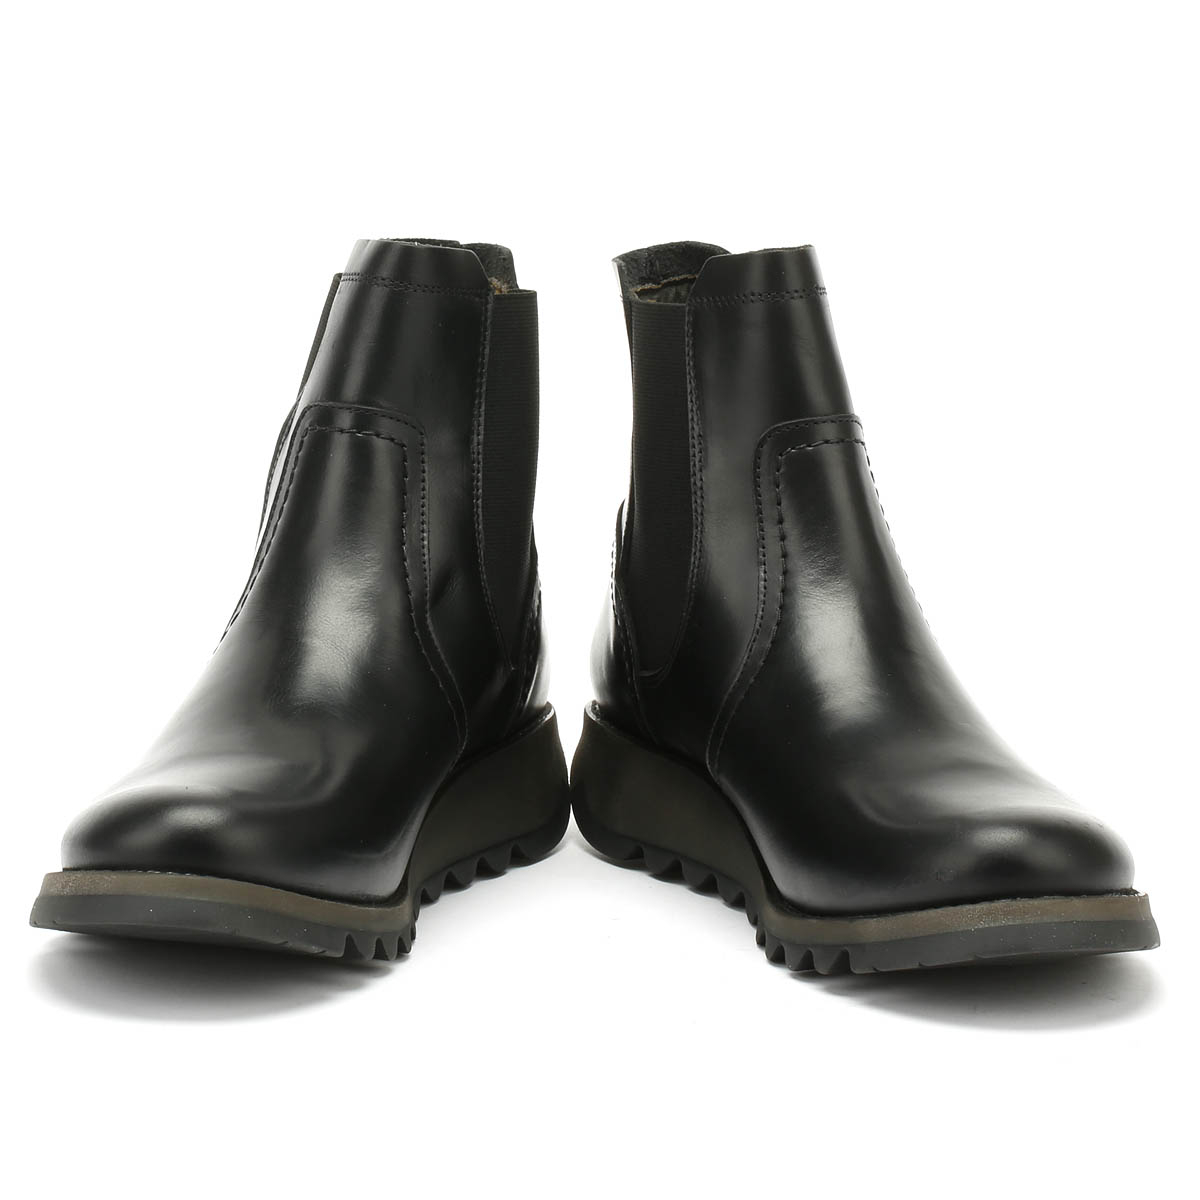 Fly-London-Womens-Boots-Black-Scon-Rug-Ladies-Leather-Winter-Ankle-Shoes thumbnail 5